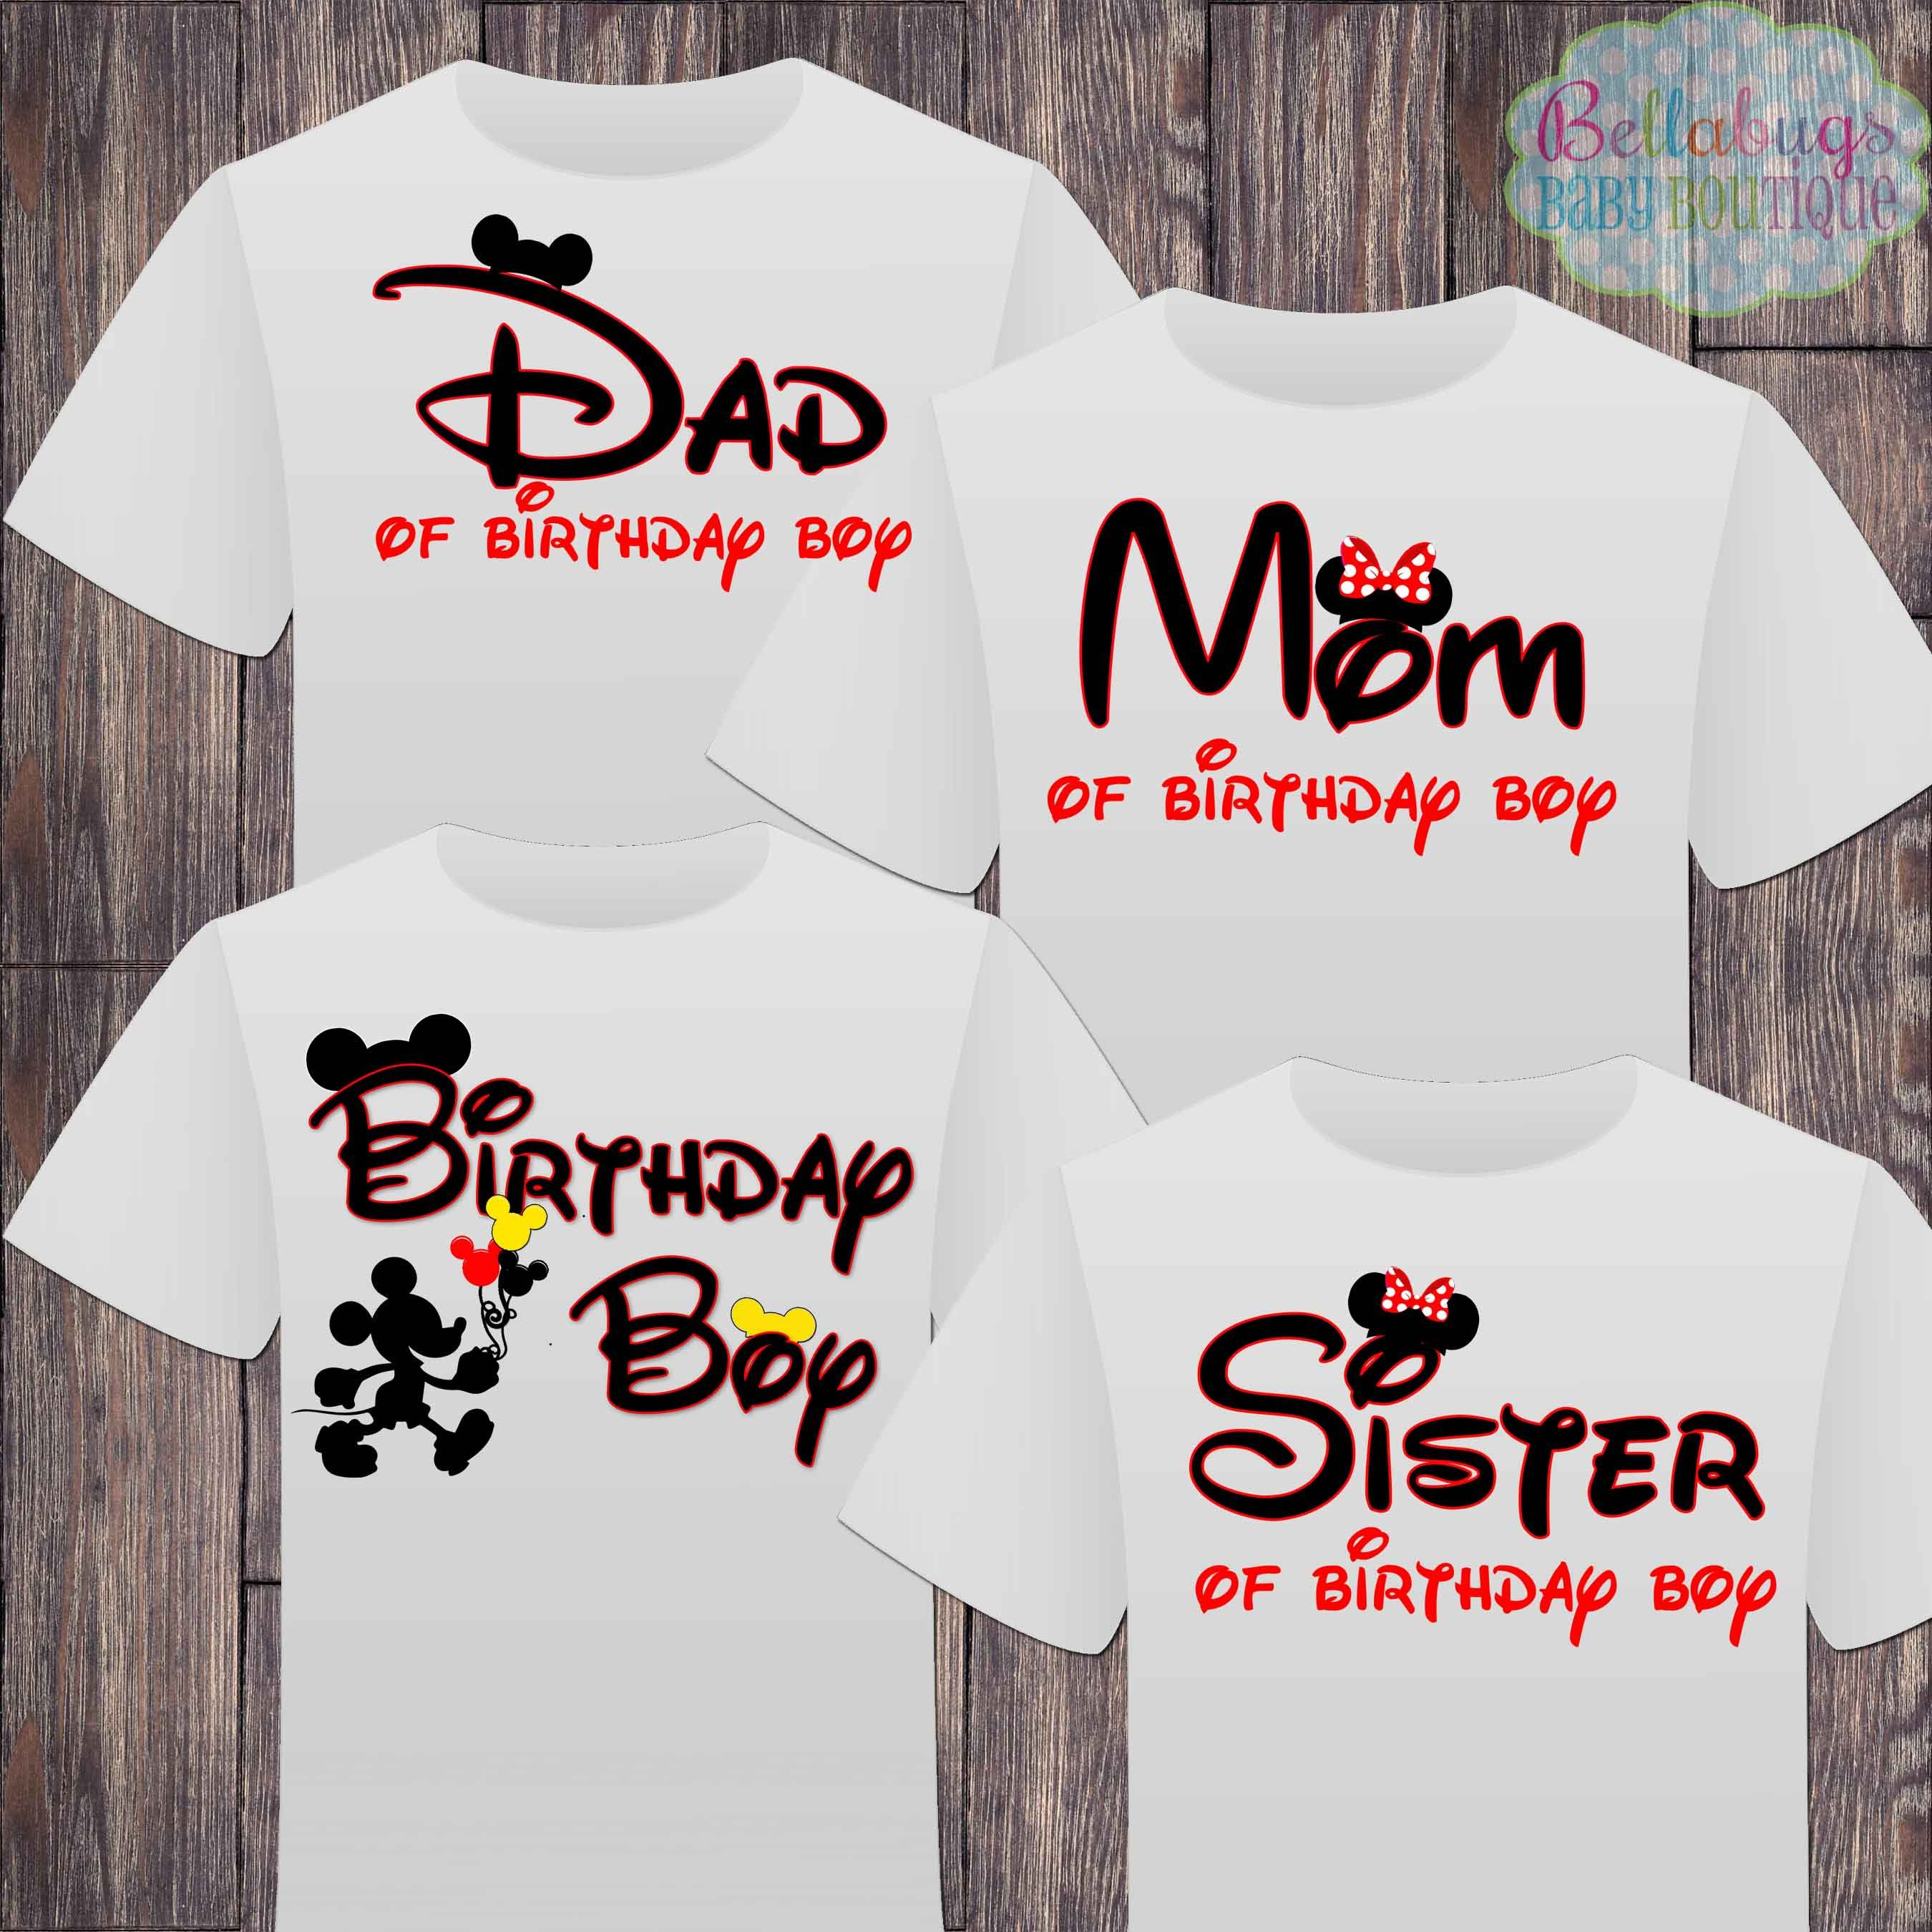 Matching Disney Family Birthday Boy Tshirts